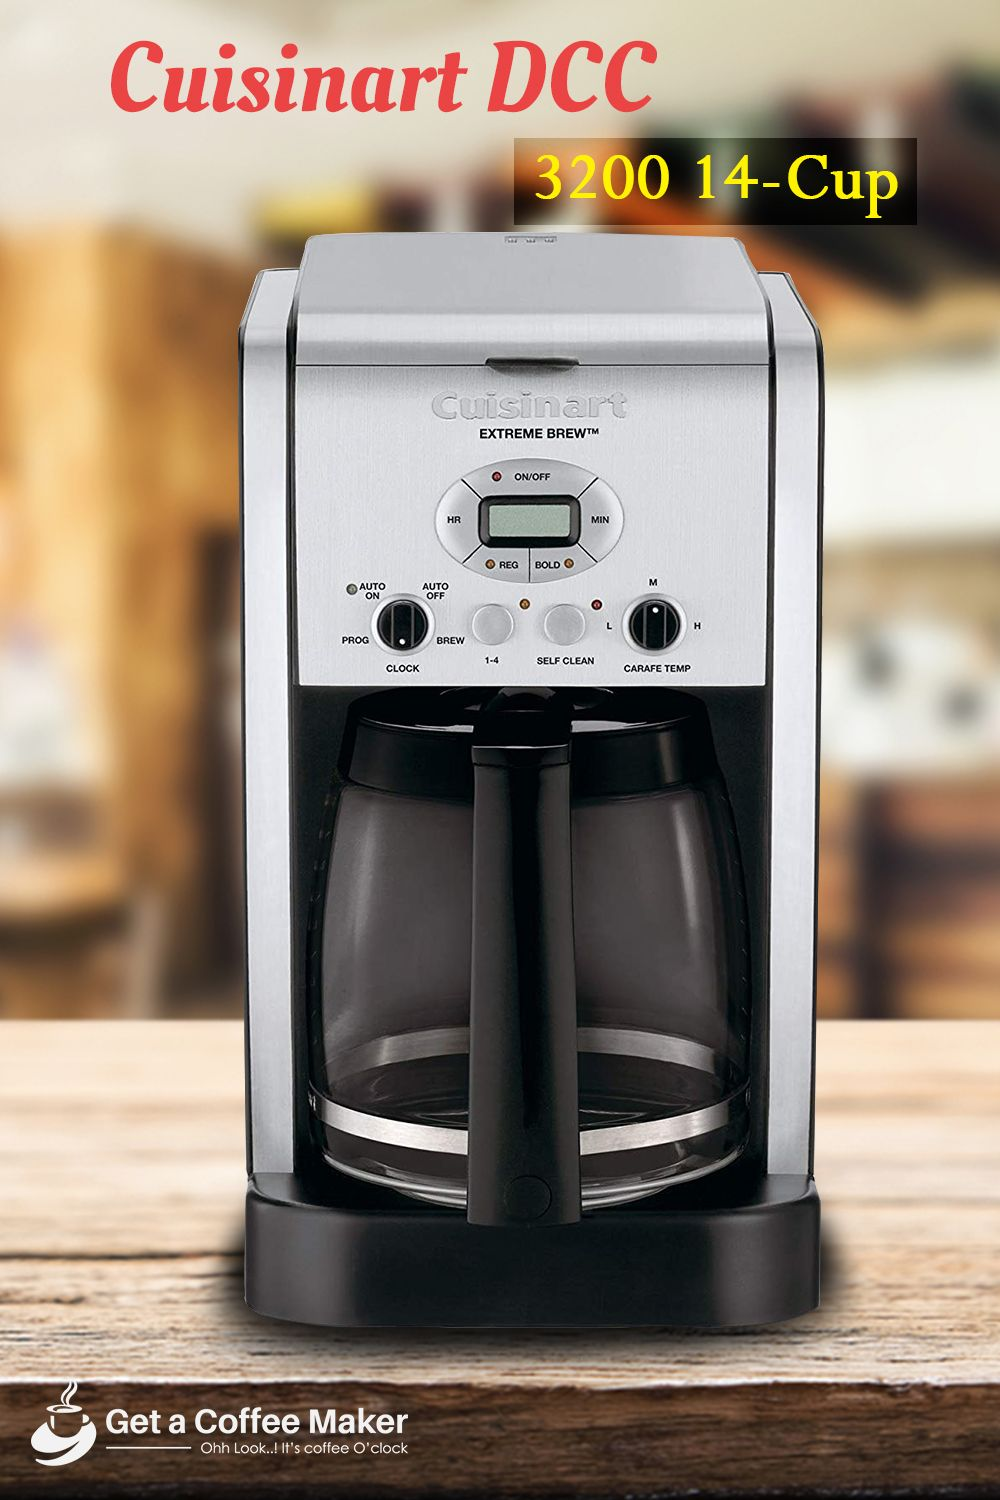 Top 10 Drip Coffee Makers (April 2020) Reviews & Buyers